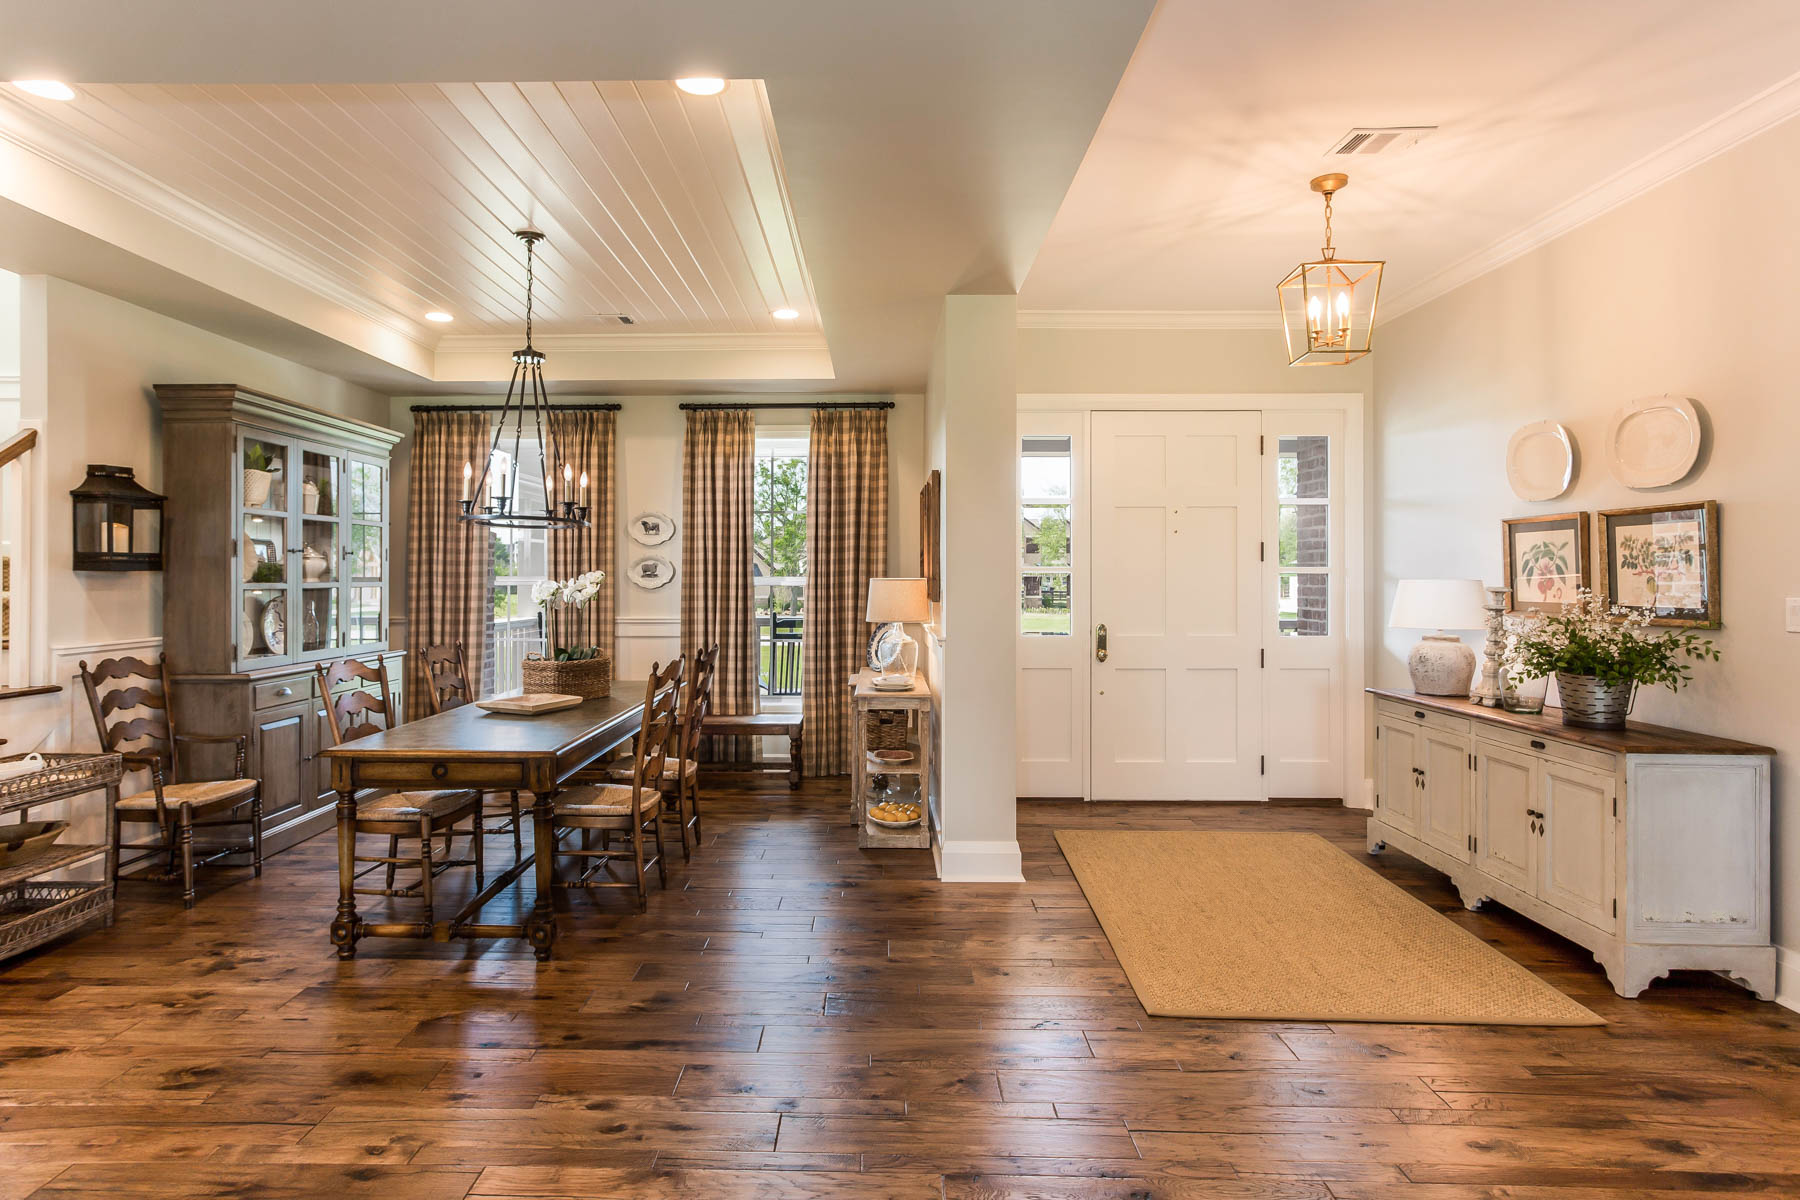 Dining Room/ Entry Way